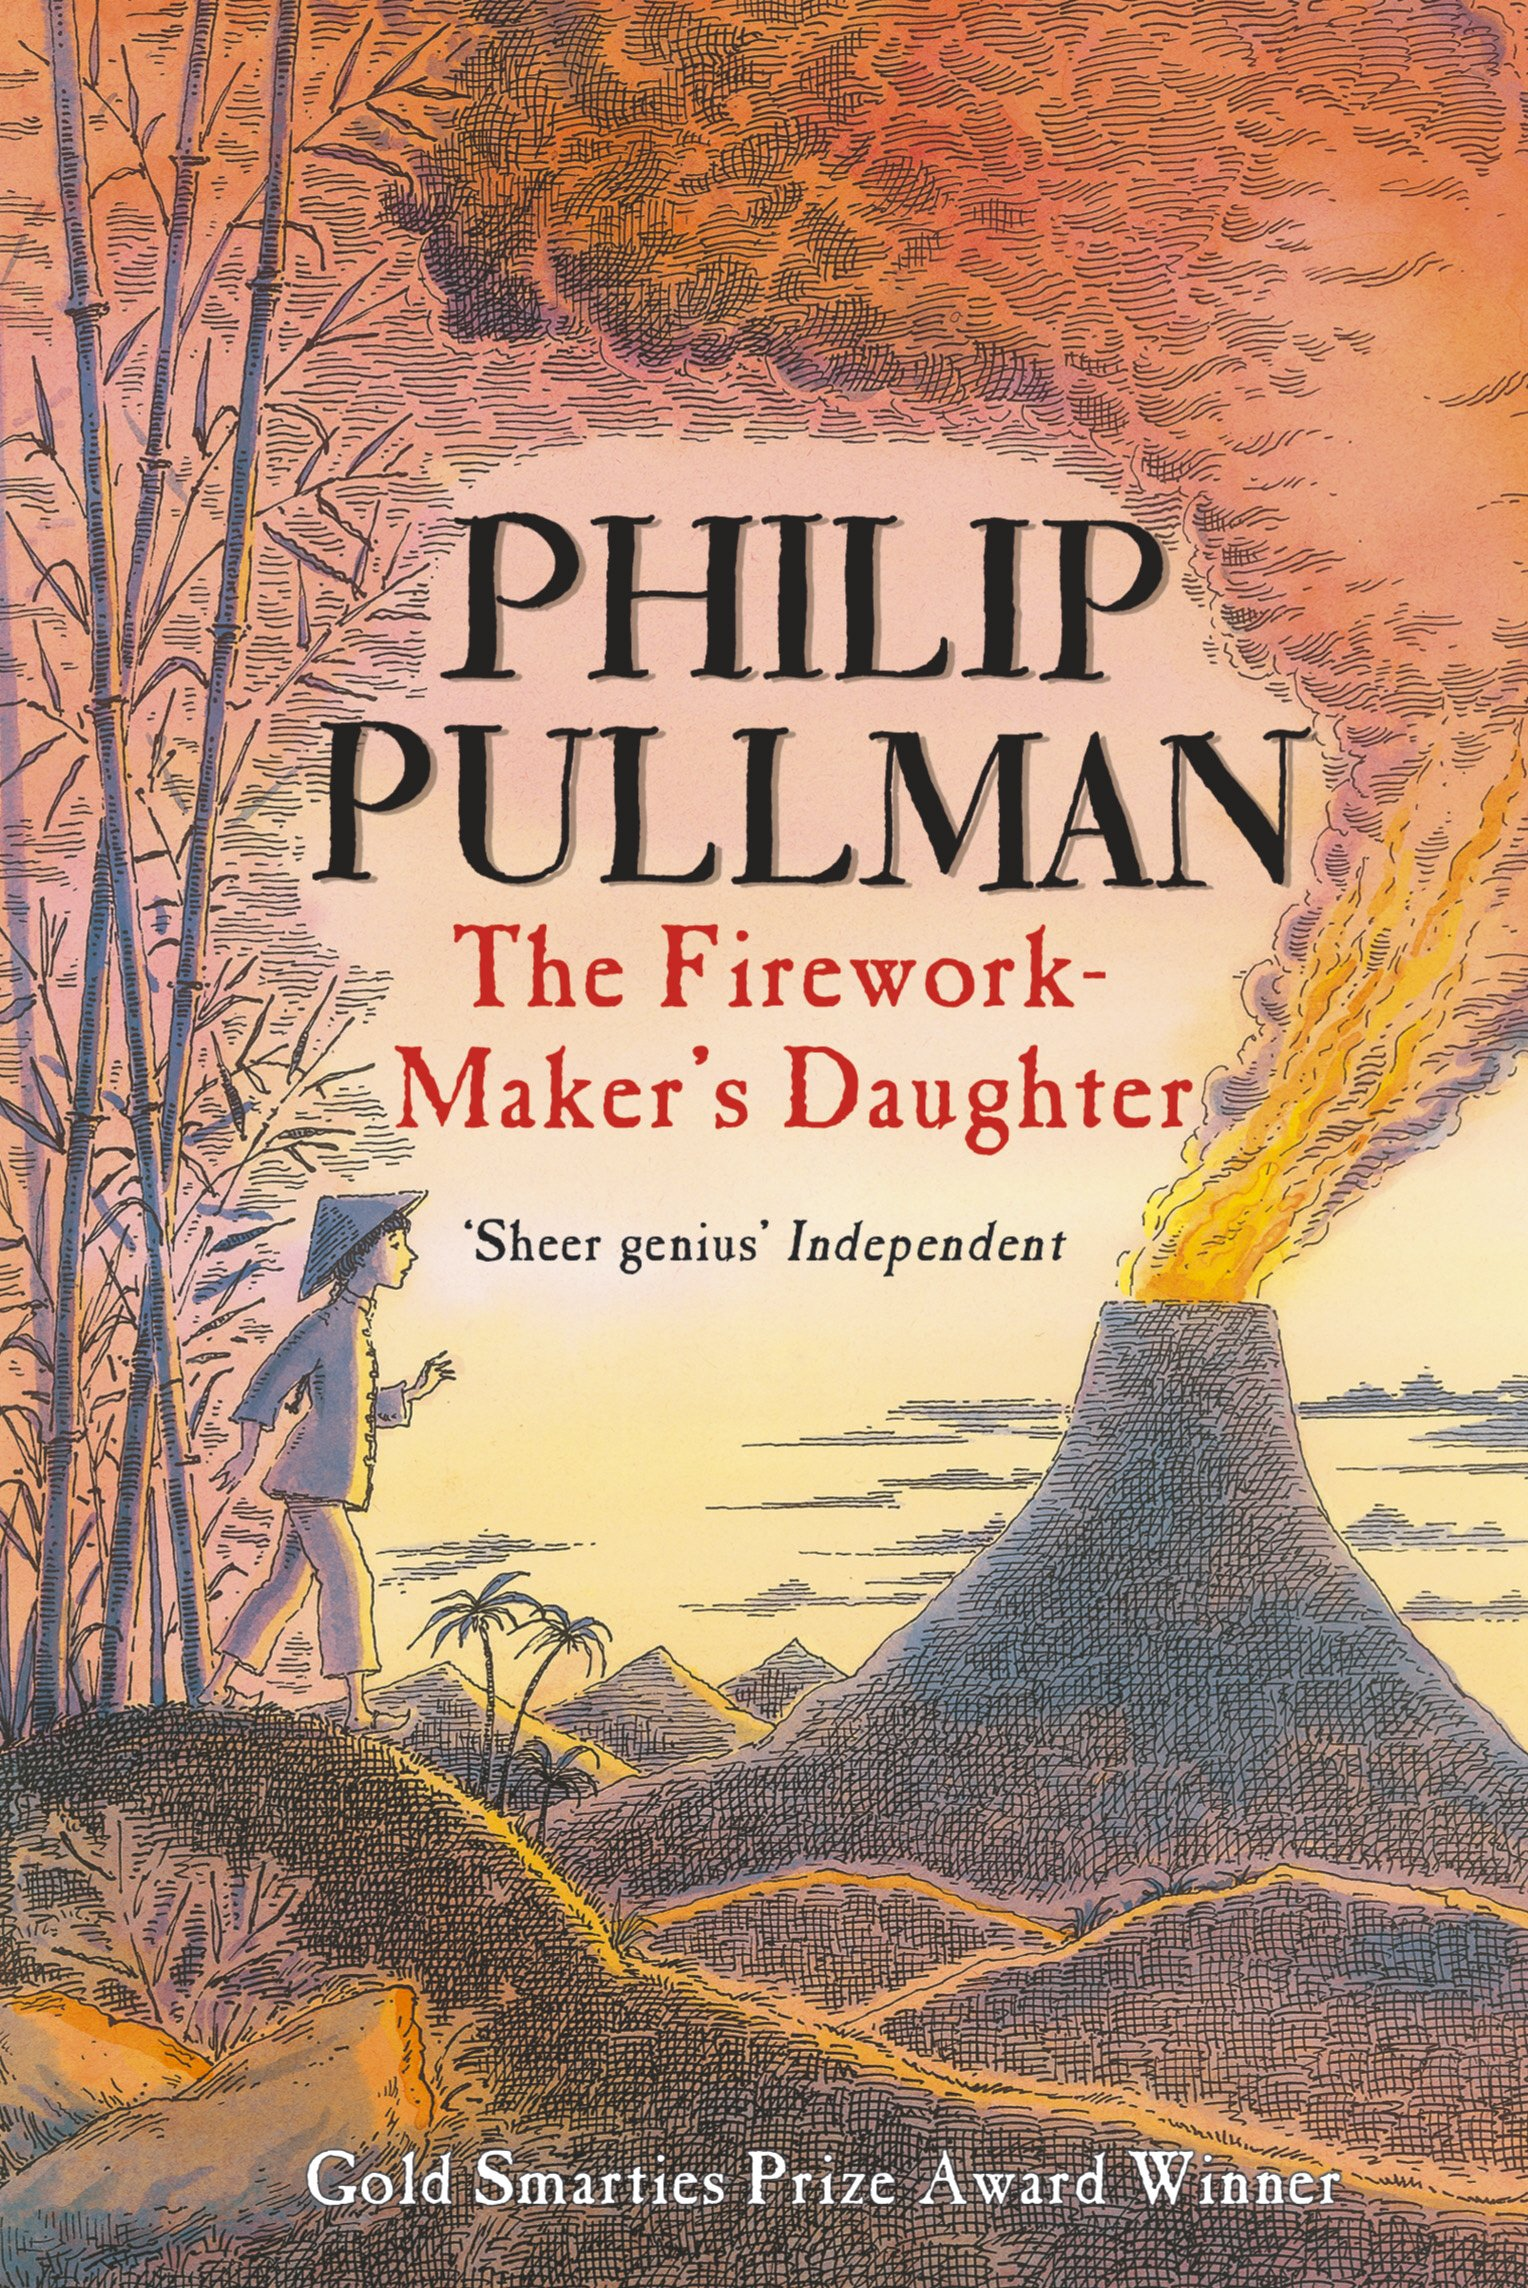 The Firework Maker's Daughter: Amazon.co.uk: Pullman, Philip: Books